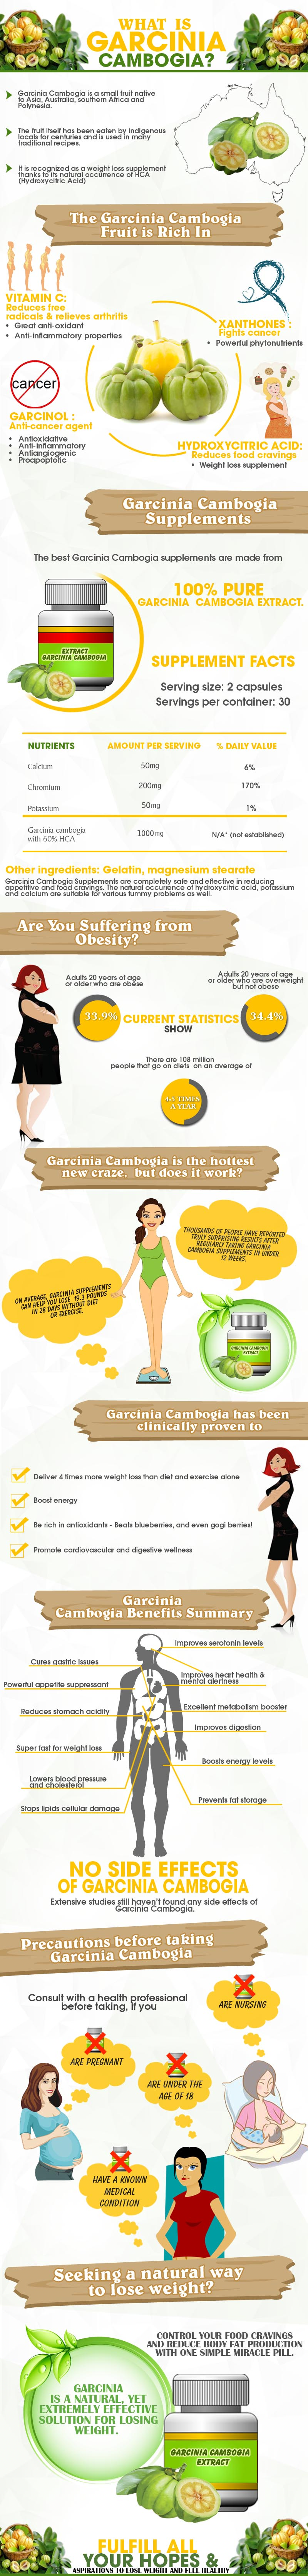 Garcinia Cambogia Health Benefits Infographic